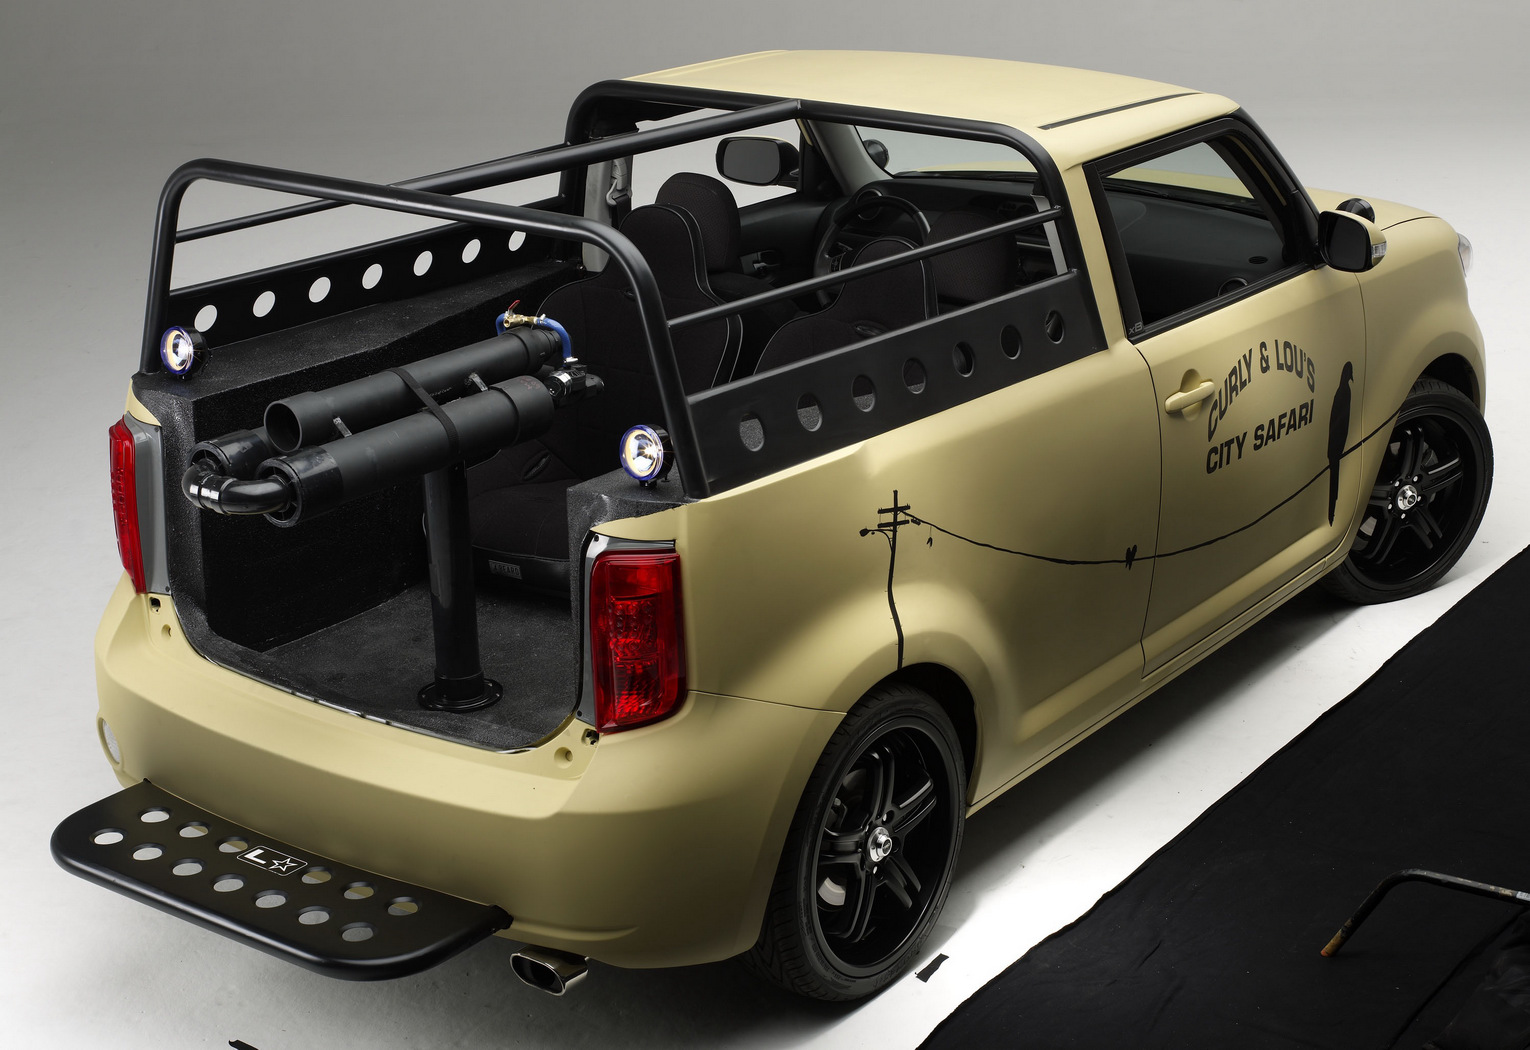 Car Reviews Sema Scion Xb L Con City Safari Pick Up